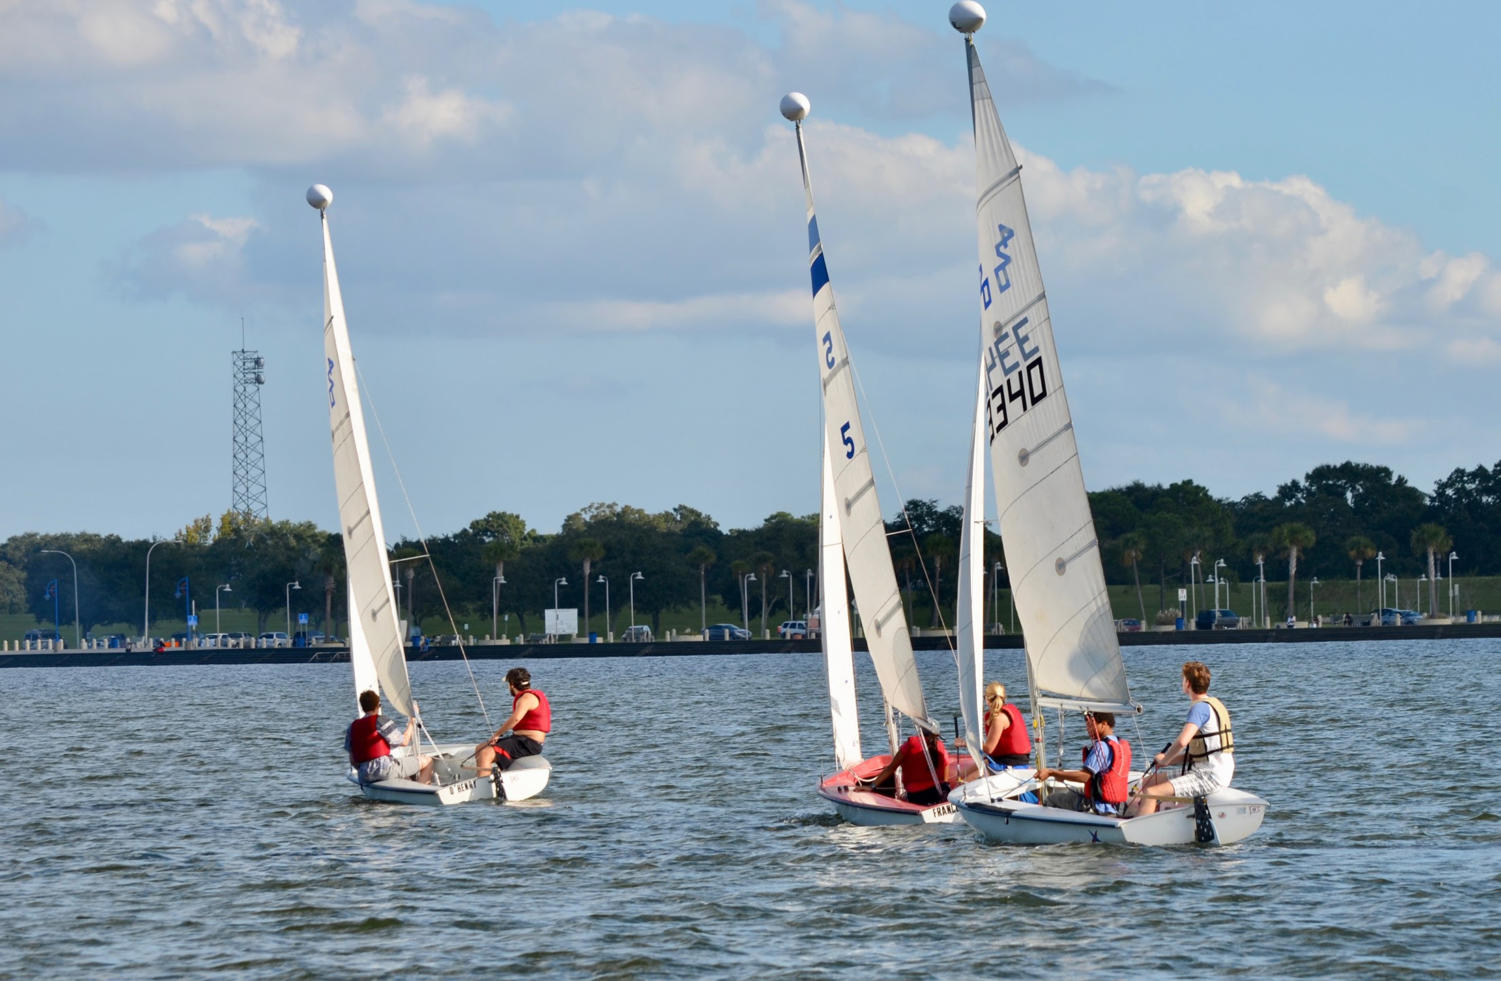 Loyola's sailing club practices on the waters of Lake Pontchartrain, an almost 20-minute drive away from campus. The sailing team offers students a chance to compete in regattas across the nation. Photo by Sofia Giordano.